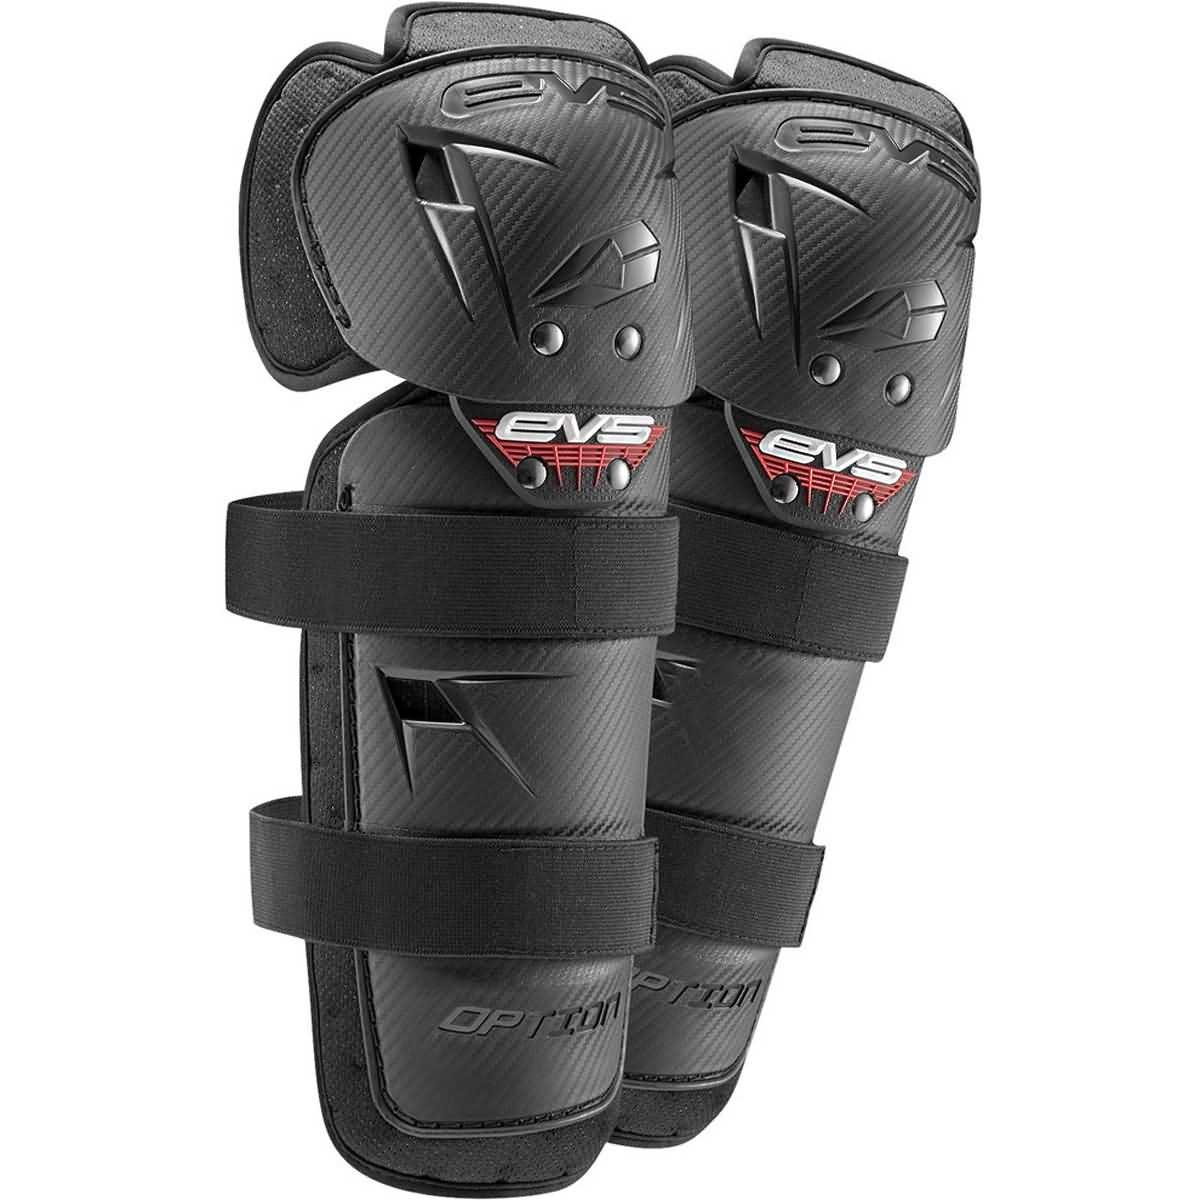 EVS 2016 Option Mini Knee Guard Off-Road Motorcycle Body Armor - Black/One Size